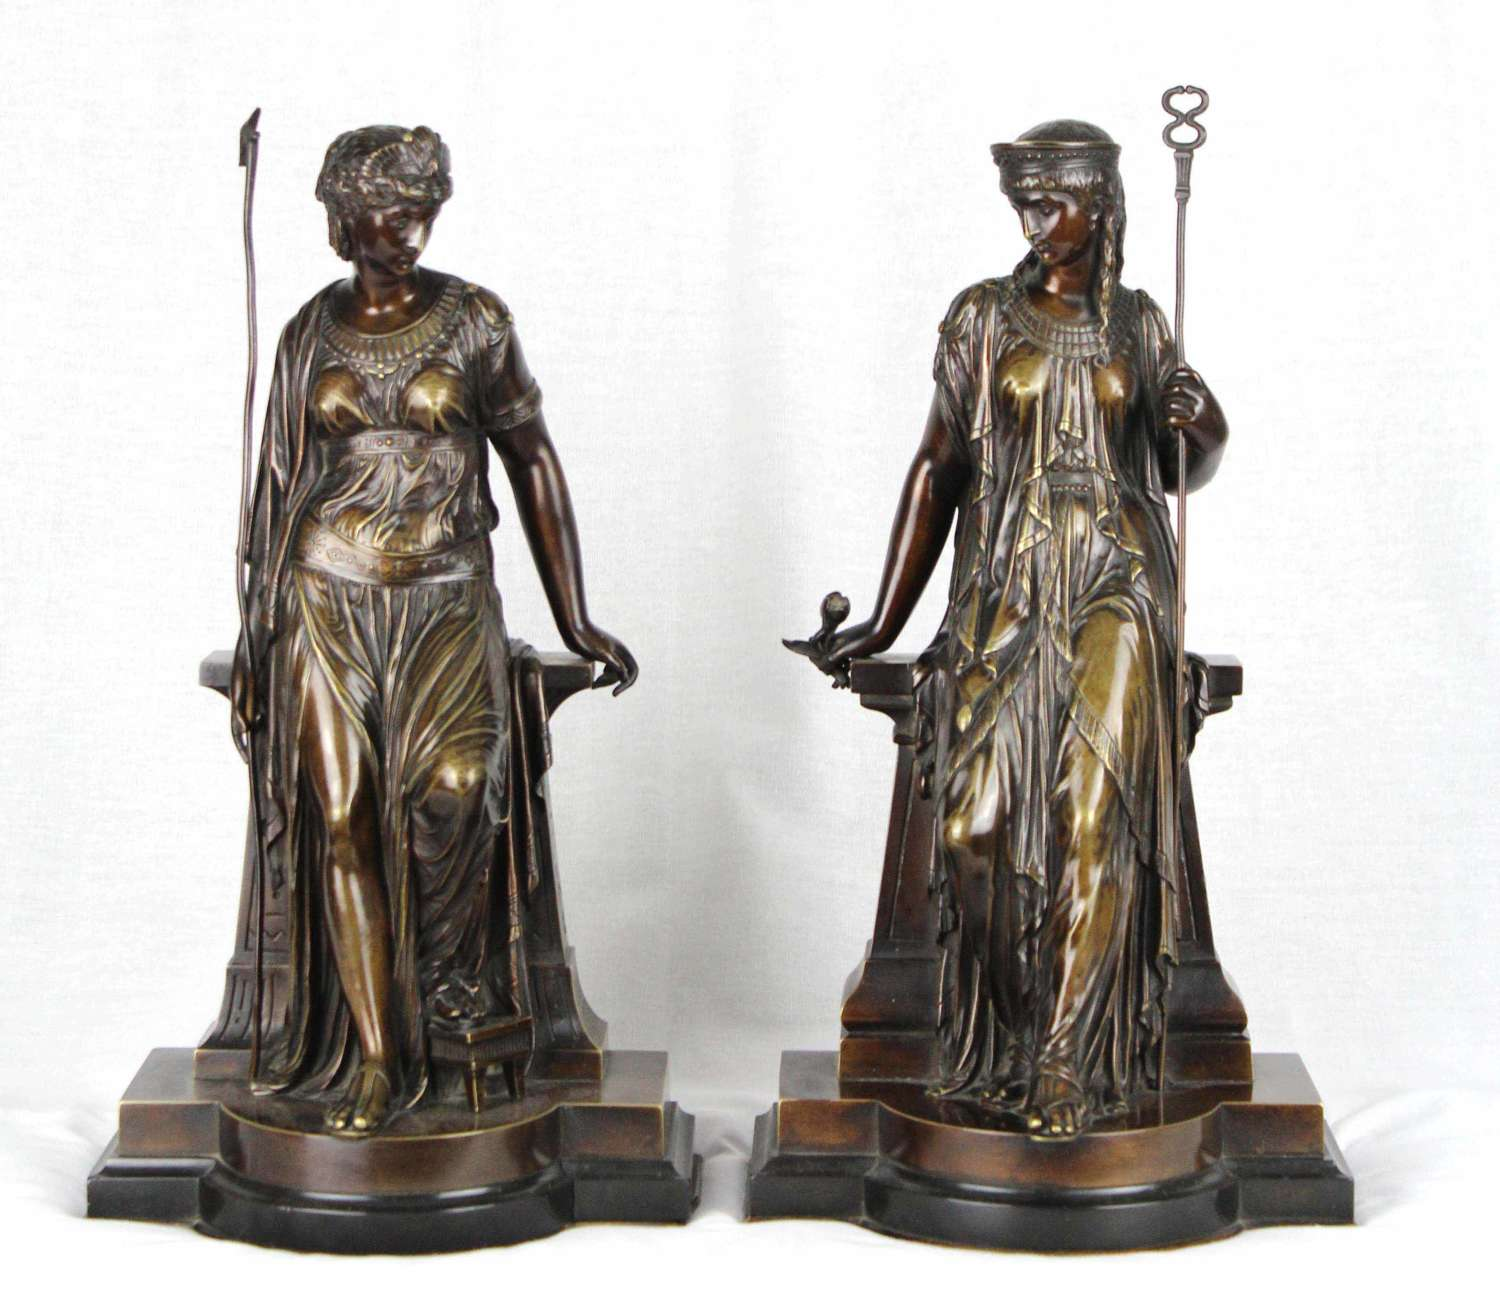 A 19th Century Egyptian style bronze maidens by Eutrope Bouret